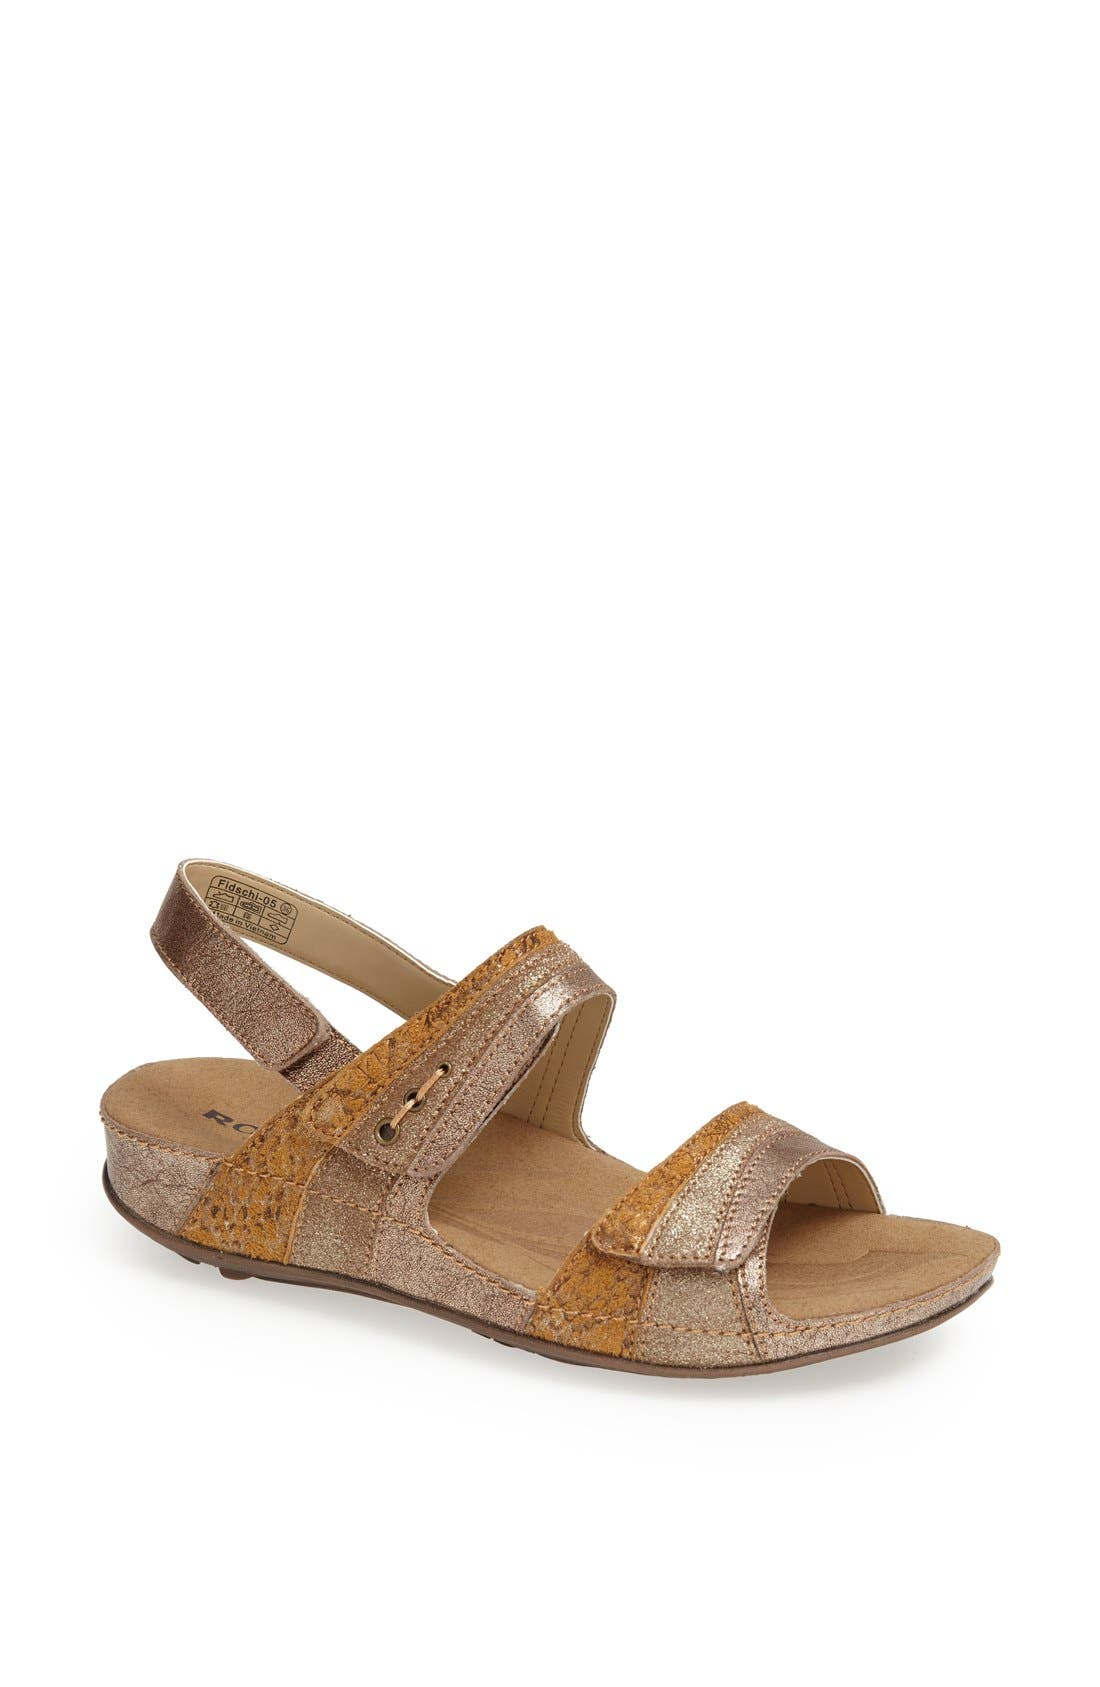 Alternate Image 1 Selected - Romika® 'Fidschi 05' Sandal